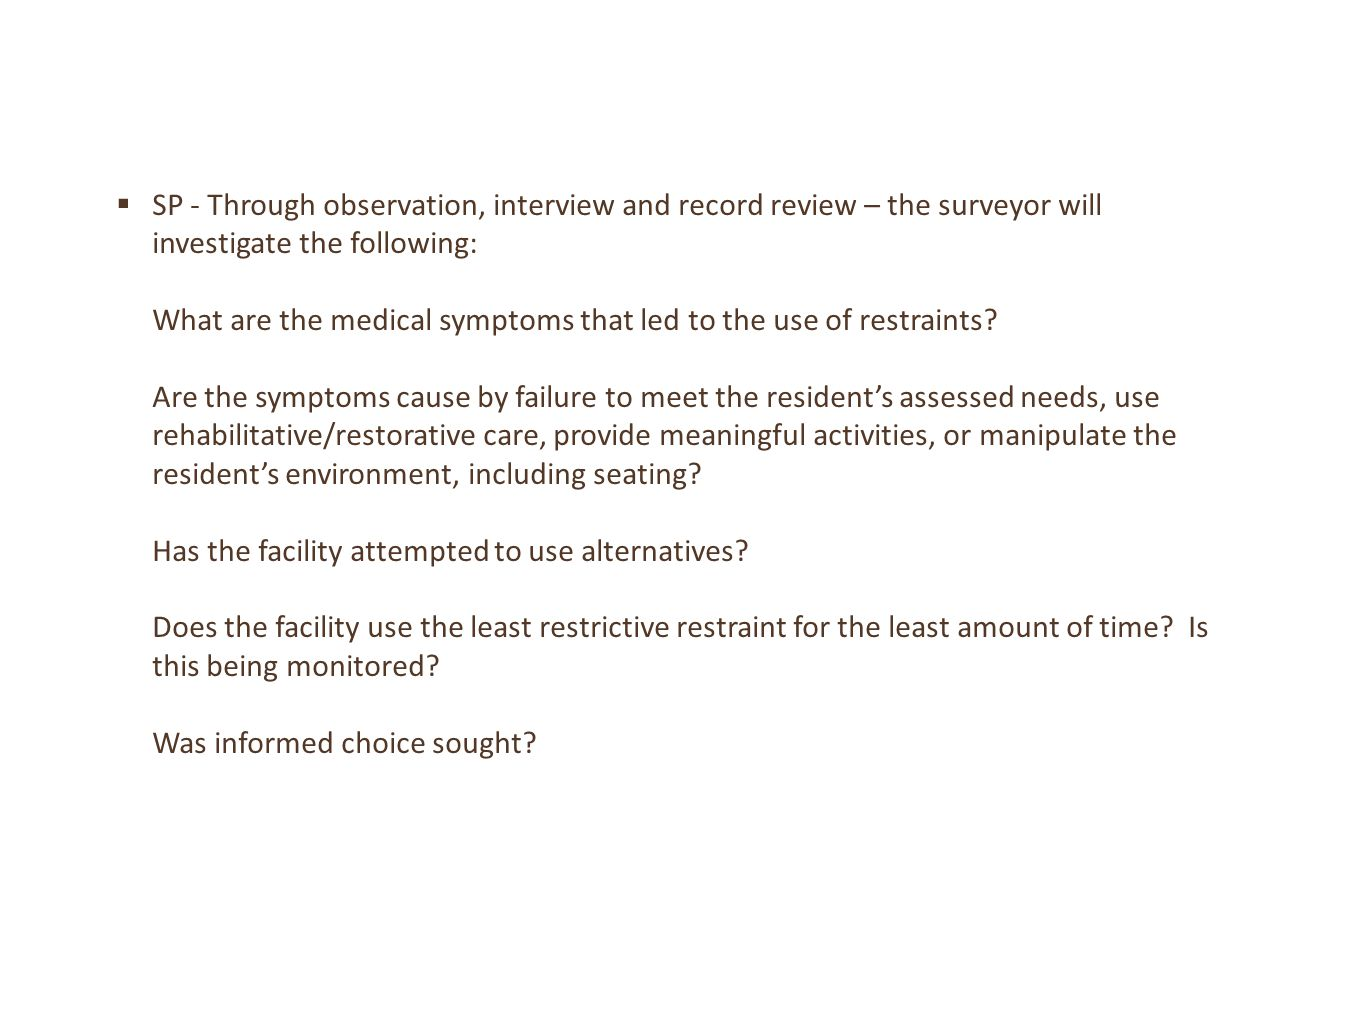 SP - Through observation, interview and record review – the surveyor will investigate the following: What are the medical symptoms that led to the use of restraints Are the symptoms cause by failure to meet the resident's assessed needs, use rehabilitative/restorative care, provide meaningful activities, or manipulate the resident's environment, including seating Has the facility attempted to use alternatives Does the facility use the least restrictive restraint for the least amount of time Is this being monitored Was informed choice sought